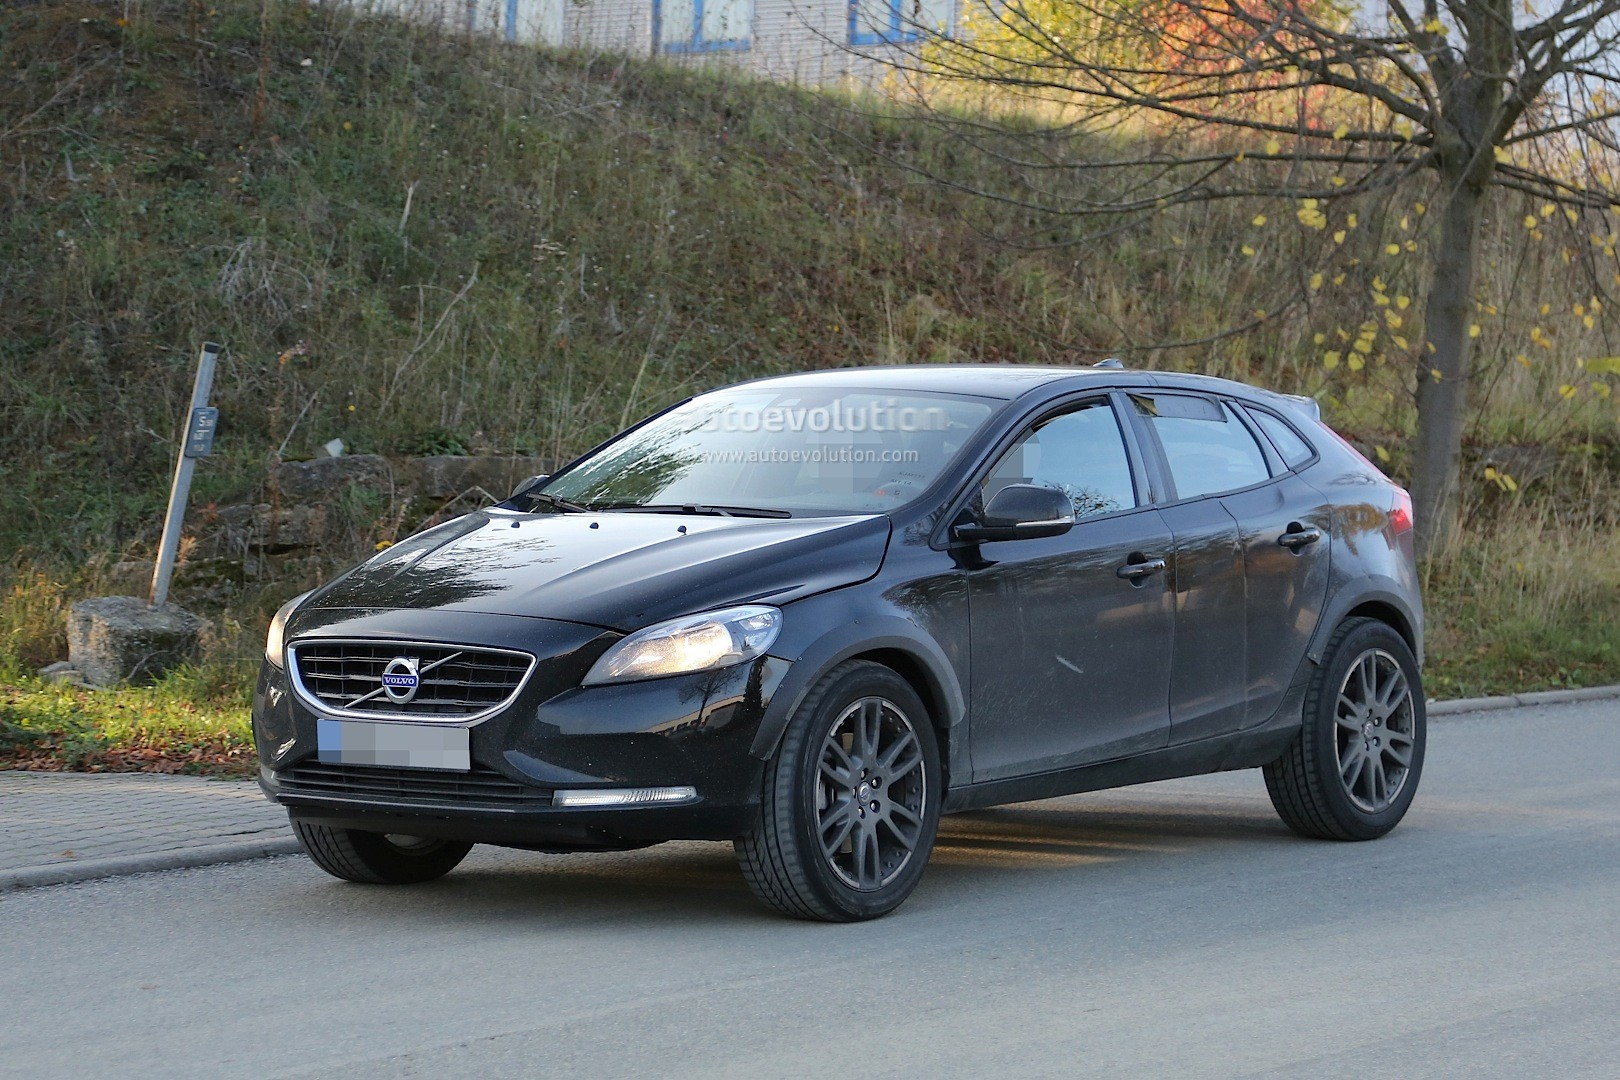 Spyshots Volvo Xc40 Ing In 2018 Will Be Built Belgium And. 2018 Volvo Xc40. Volvo. Volvo Auto Diagram At Scoala.co